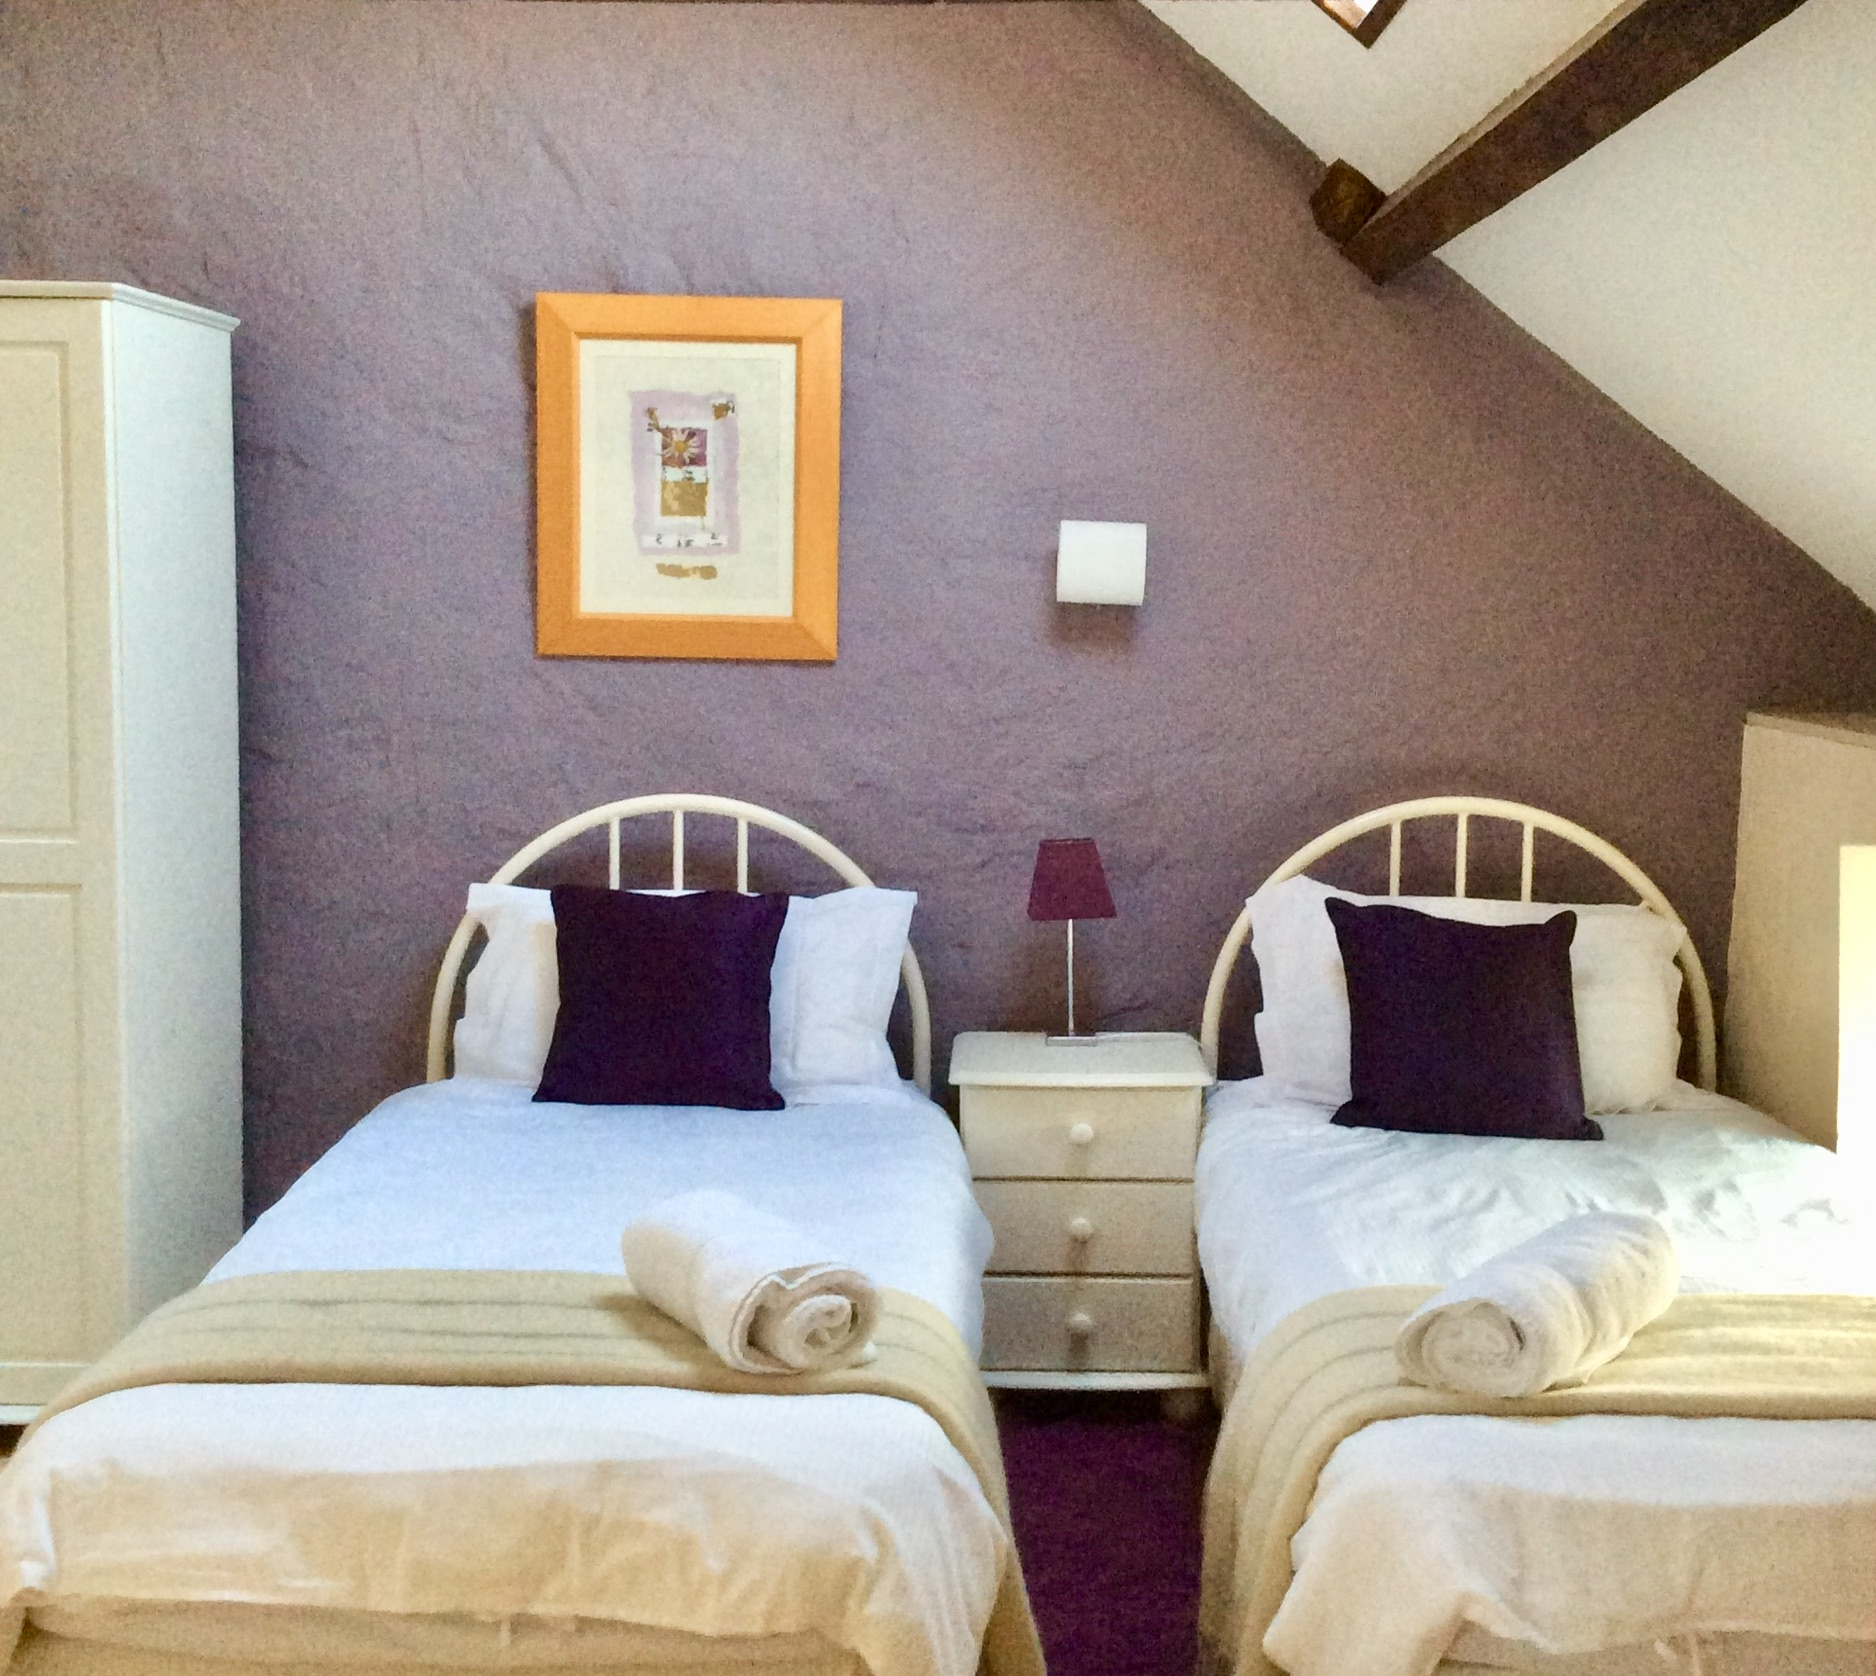 the twin room in the hayloft our 2 bedroom holiday cottage at Cwmcrwth Farm Holiday Cottages at Cwmcrwth Farm Holiday Cottages in West Wales